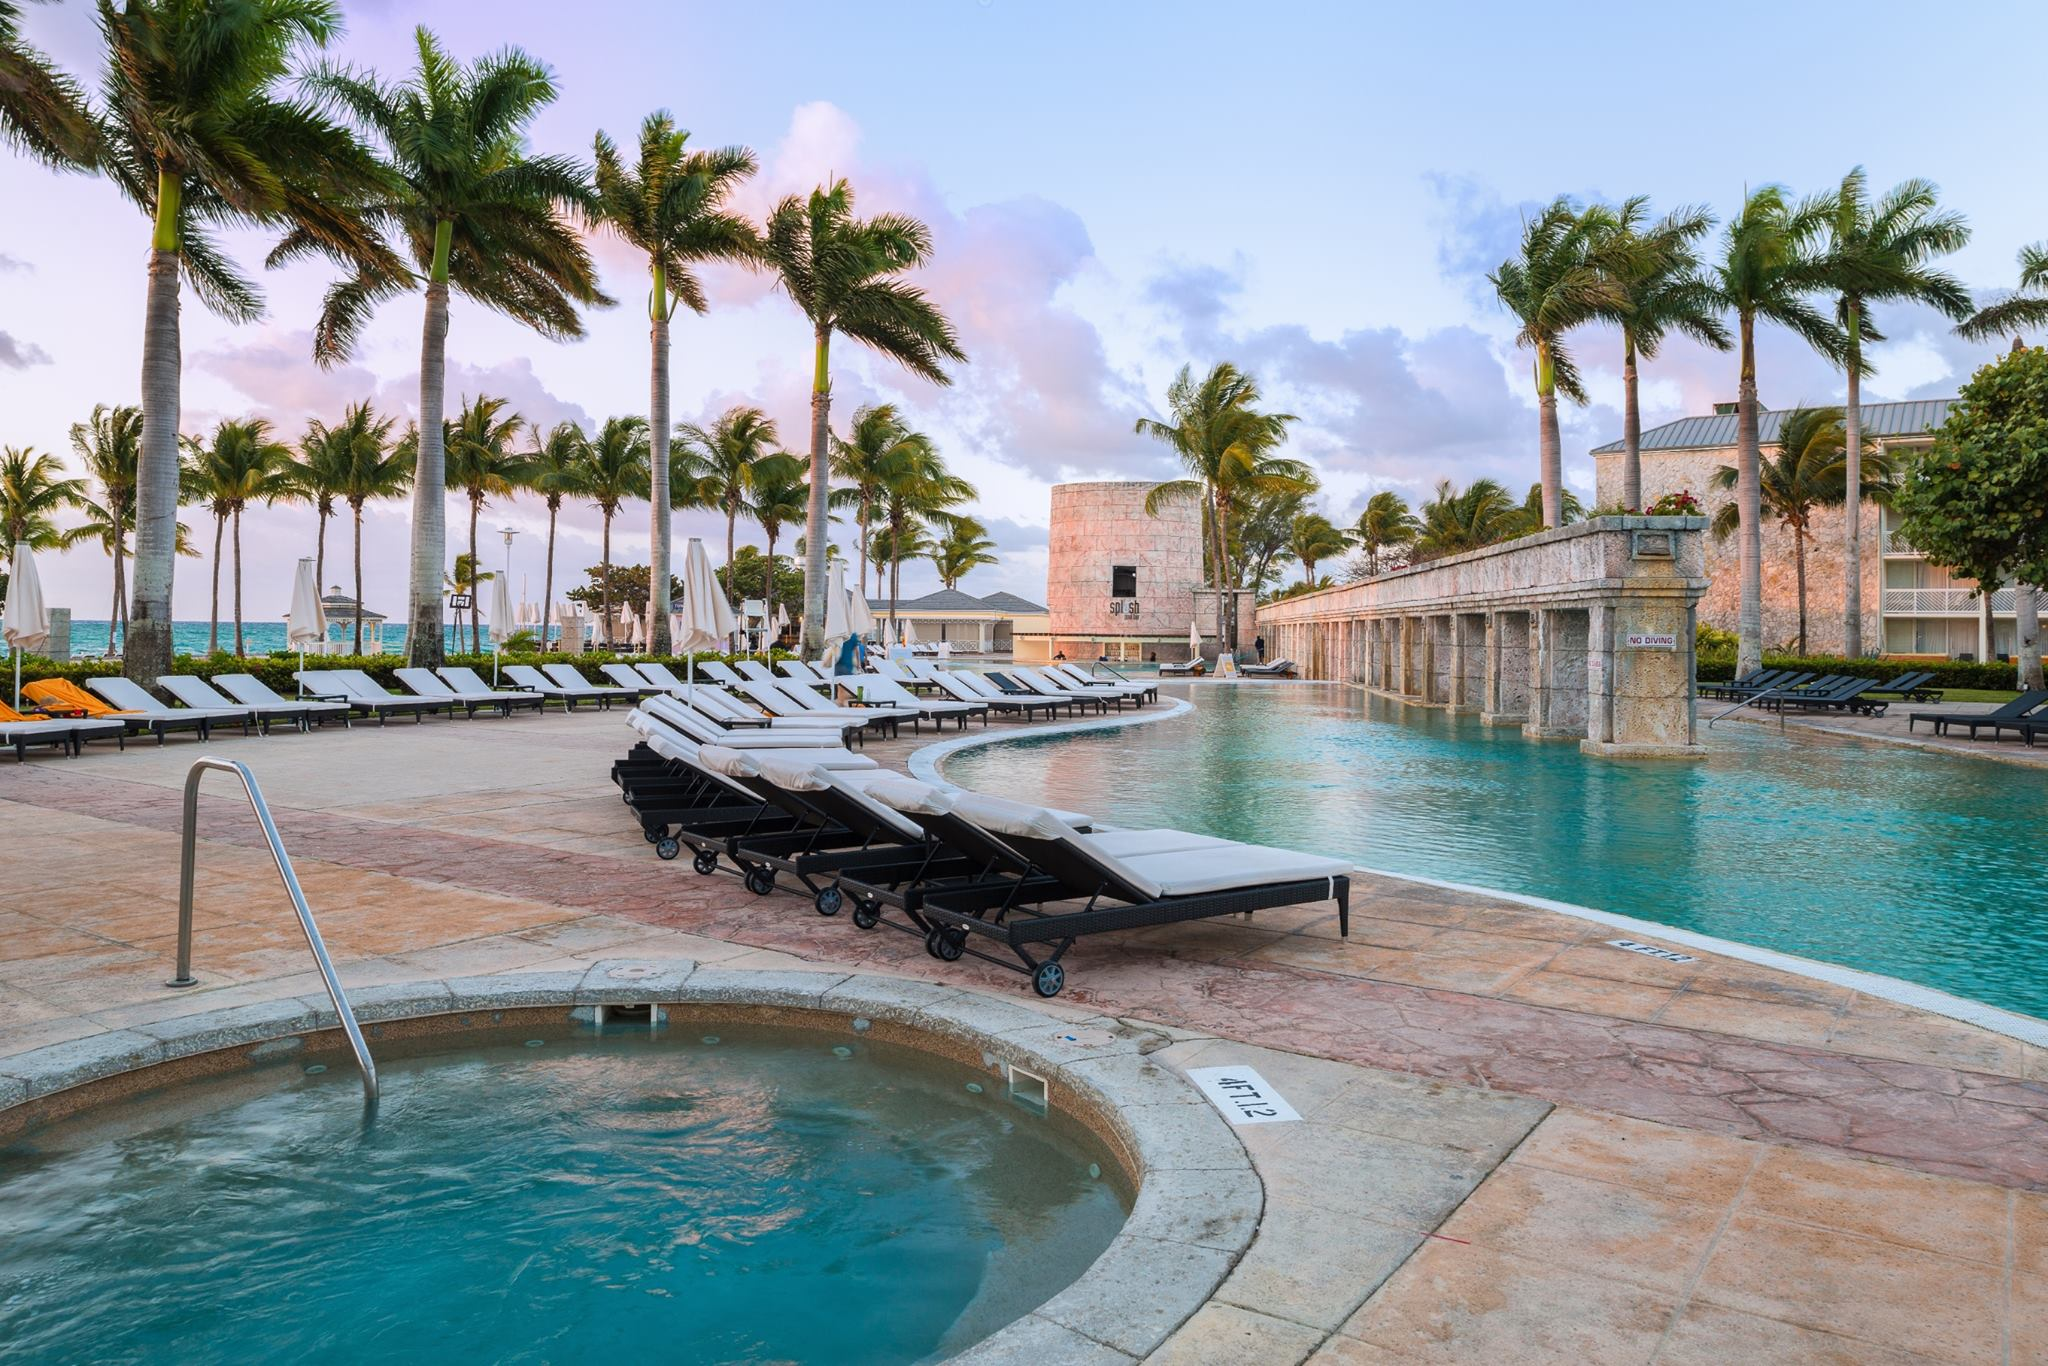 Ol' Freetown Farm Grand Bahama Island, Grand Bahama Island with Kids: What to Do and Where to Stay - MiniTime